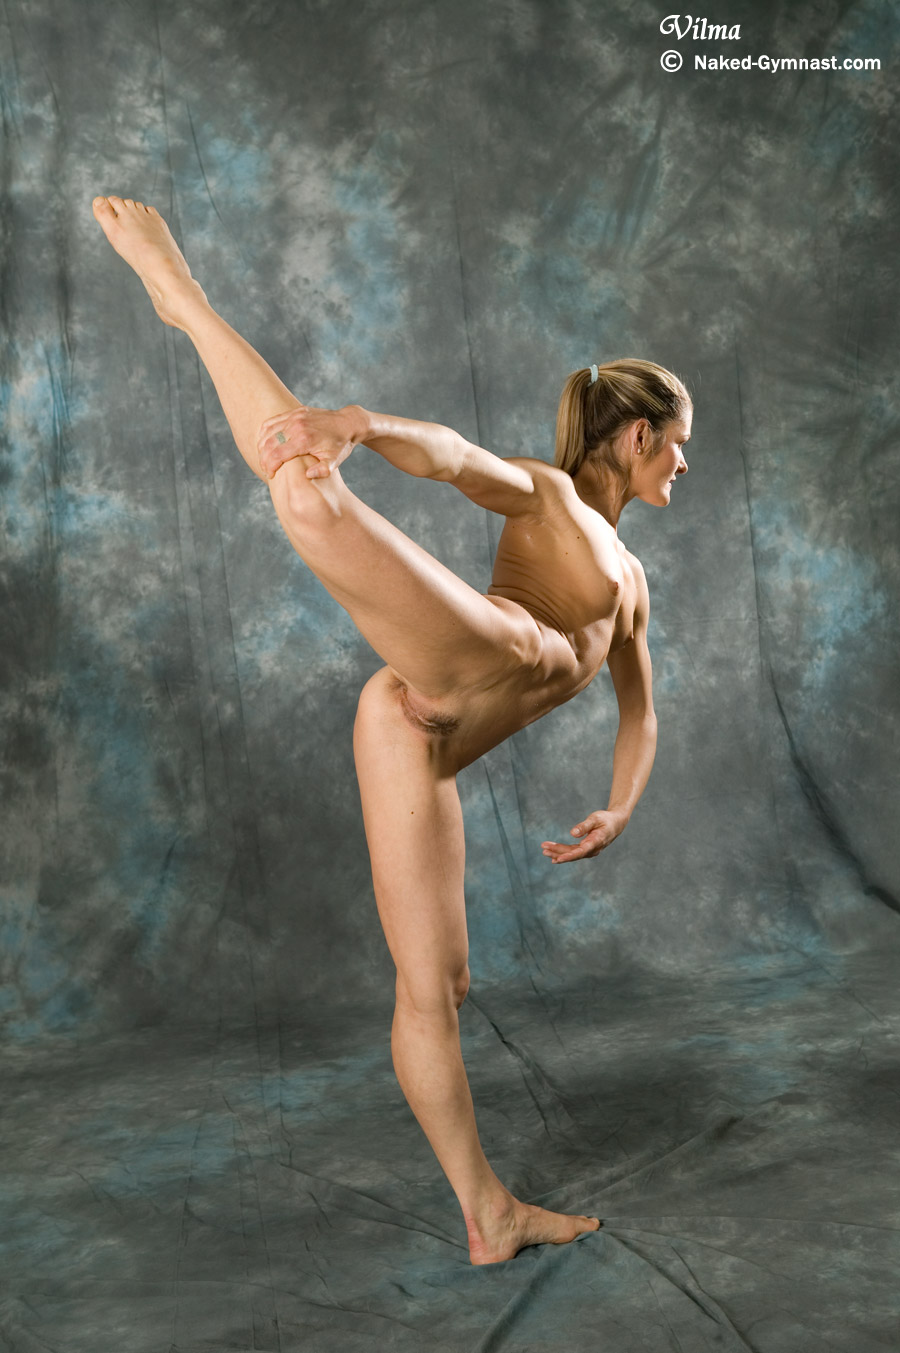 Nude Gymnast In Eclusive Contortion Performance